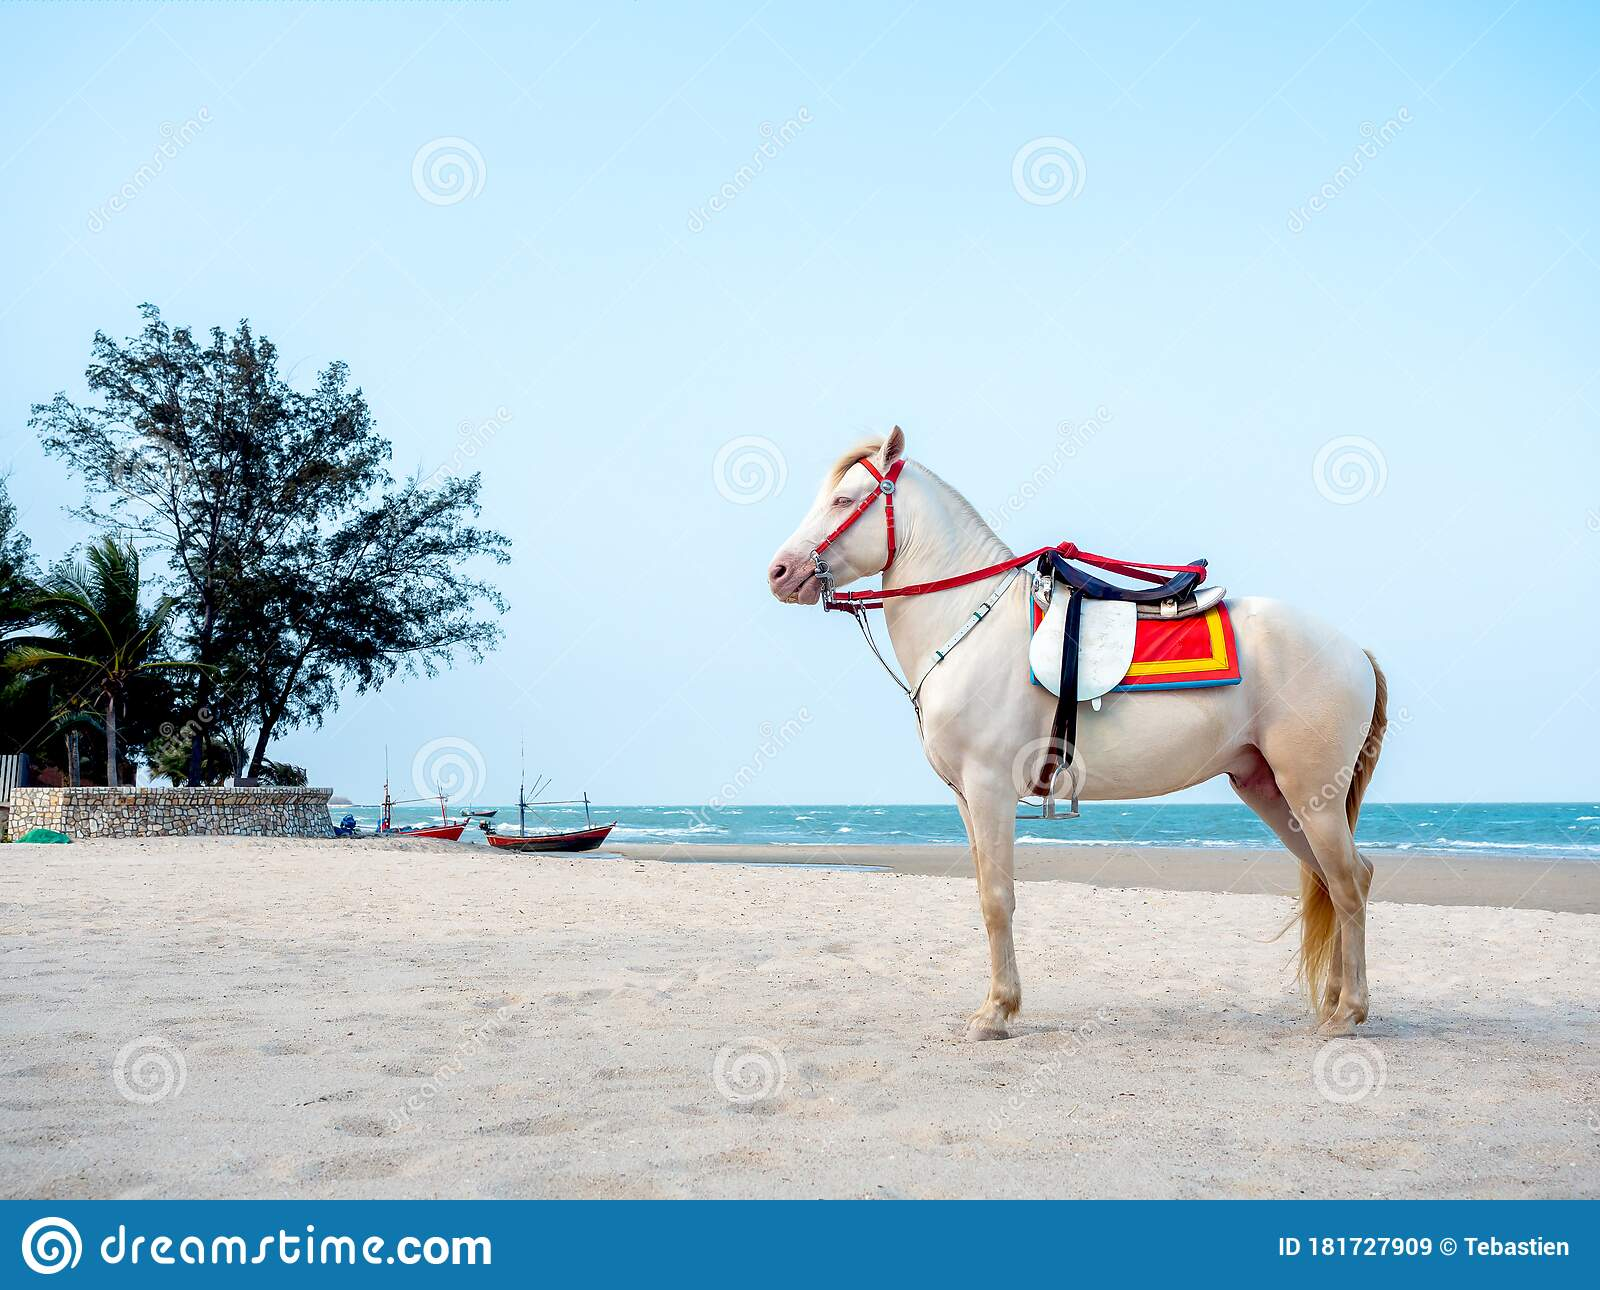 Beautiful White Horse On The Beach In Hua Hin Thailand Stock Image Image Of Outdoor Coast 181727909